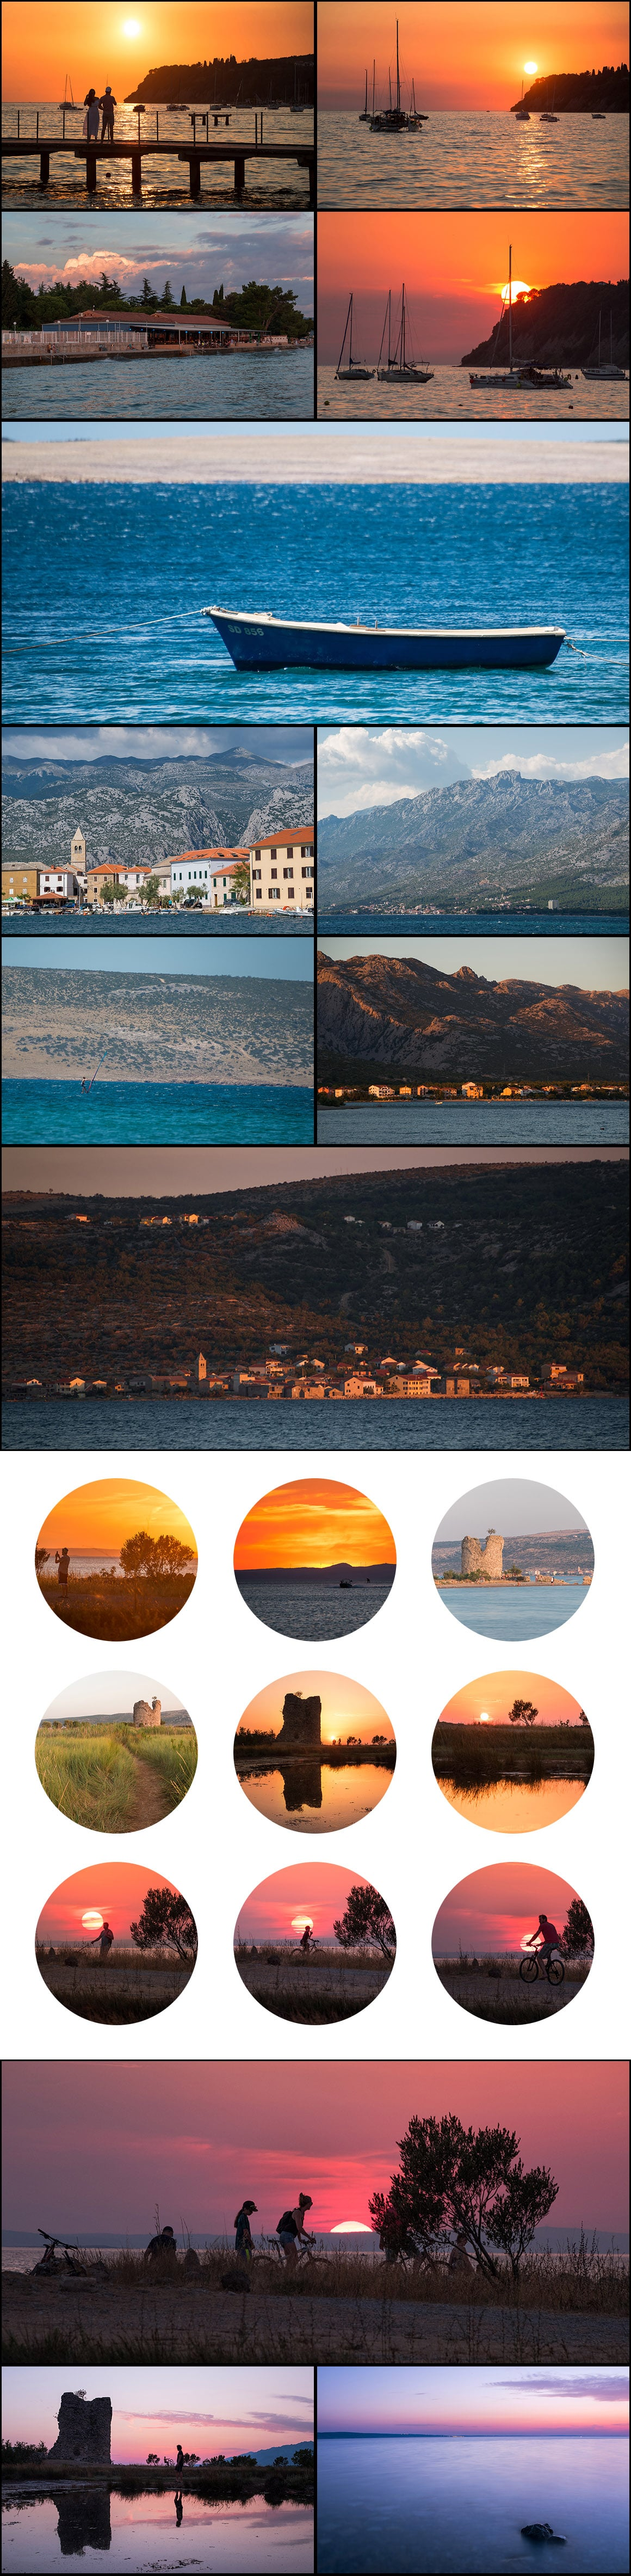 500+ Stock Images. Ultimate Photo Bundle  – $59 - PREVIEW seascapes